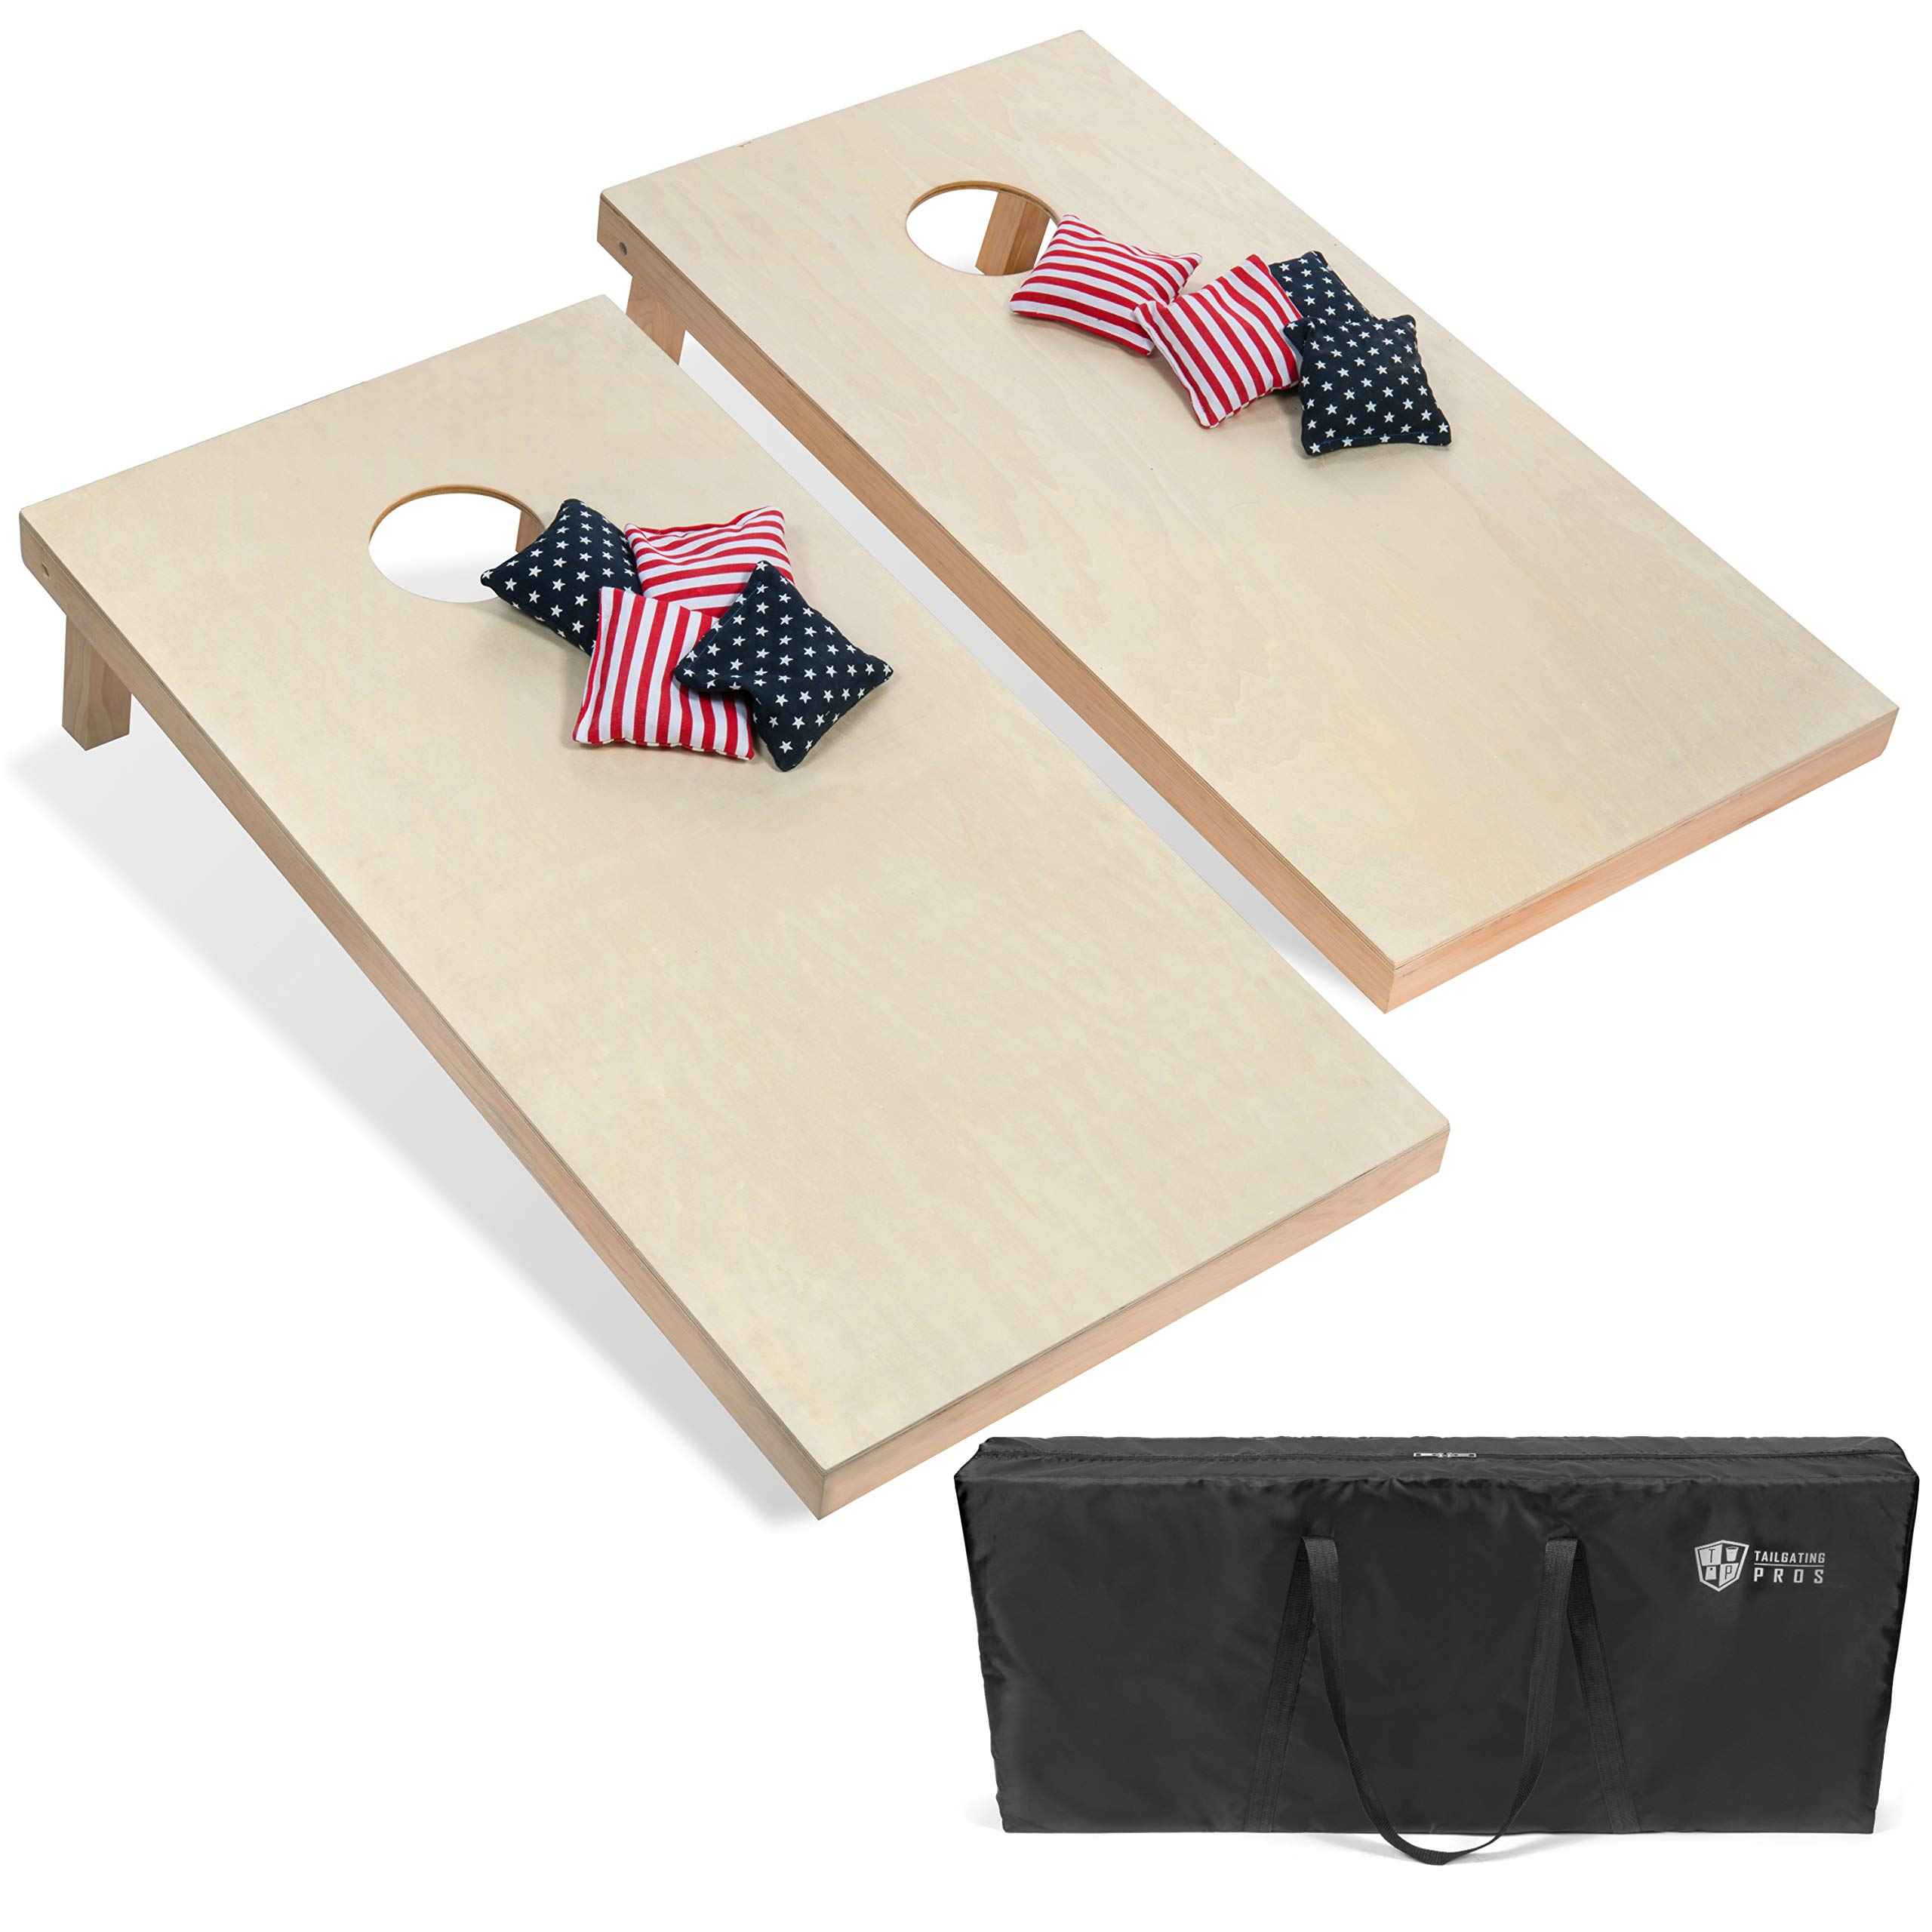 Tailgating Pros 4'x2' Cornhole Boards & Stars & Stripes Corn Hole Bags W/Carrying Case by Tailgating Pros